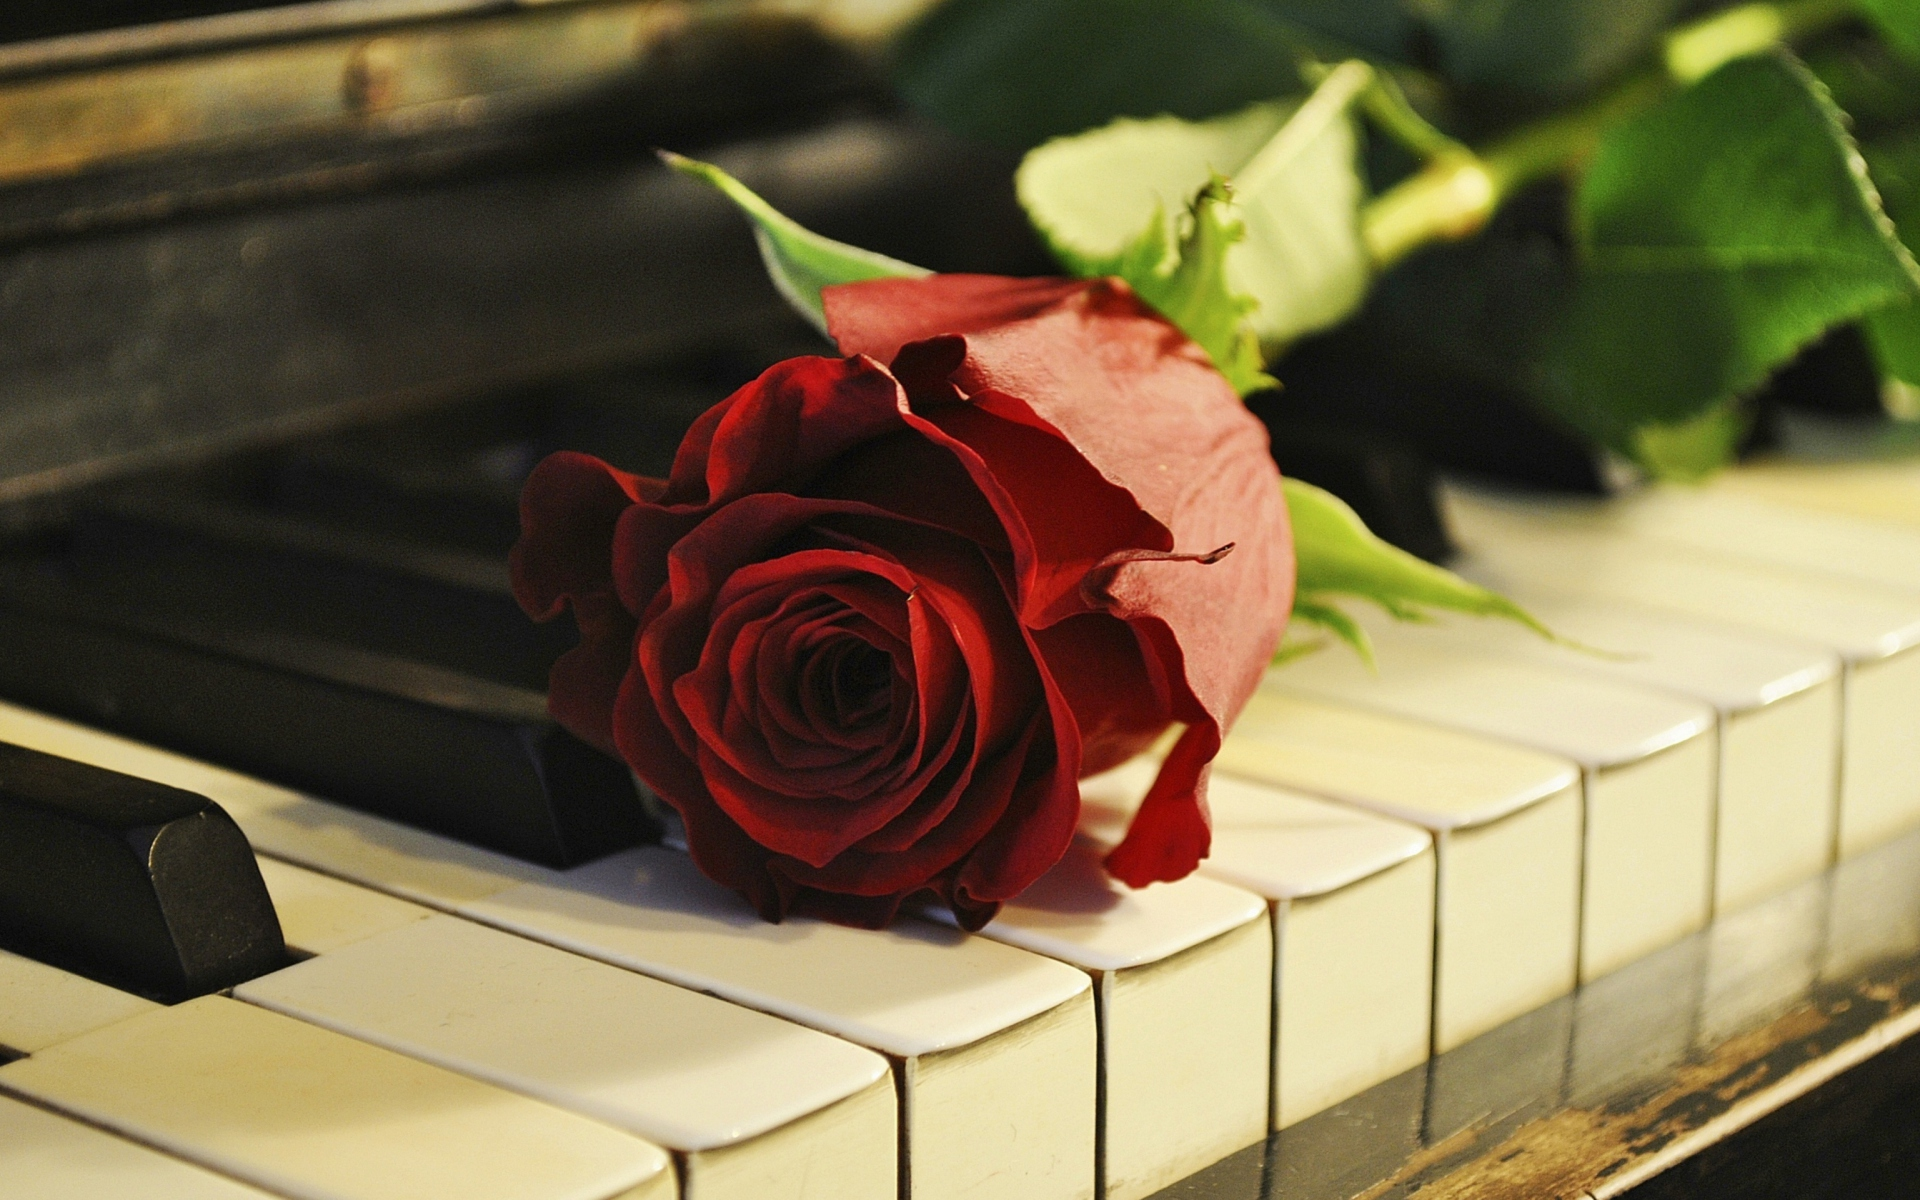 Rose-On-Piano-1920x1200